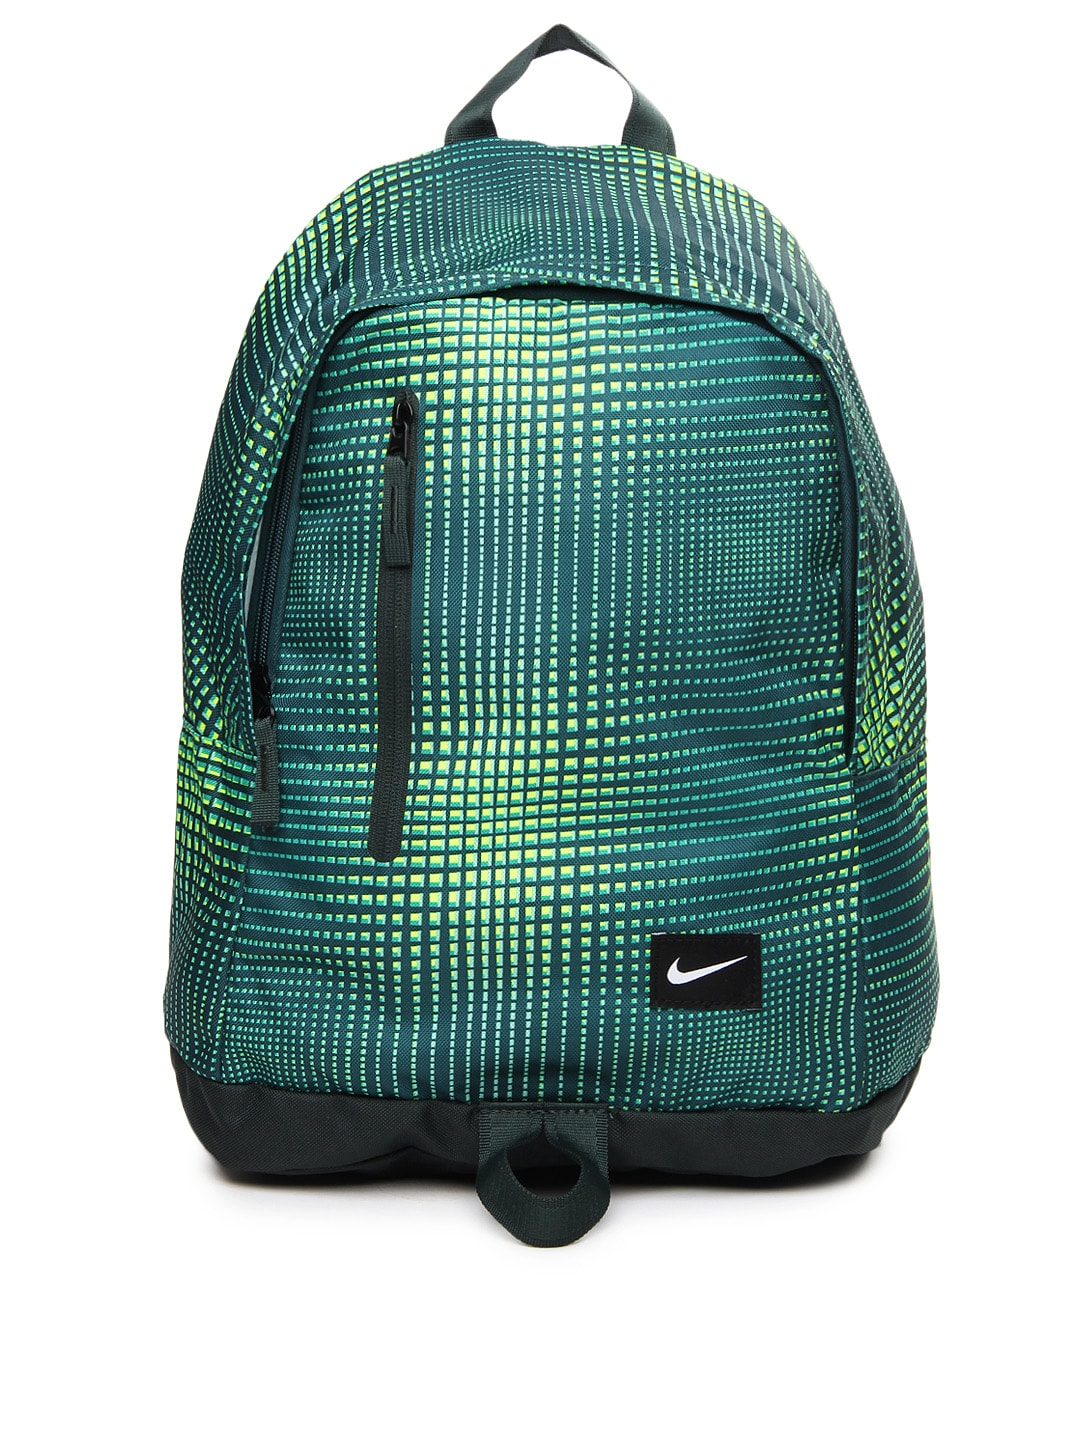 ea8770e2f2 Nike ba4856-419 Men Green All Access Halfday Printed Backpack- Price in  India